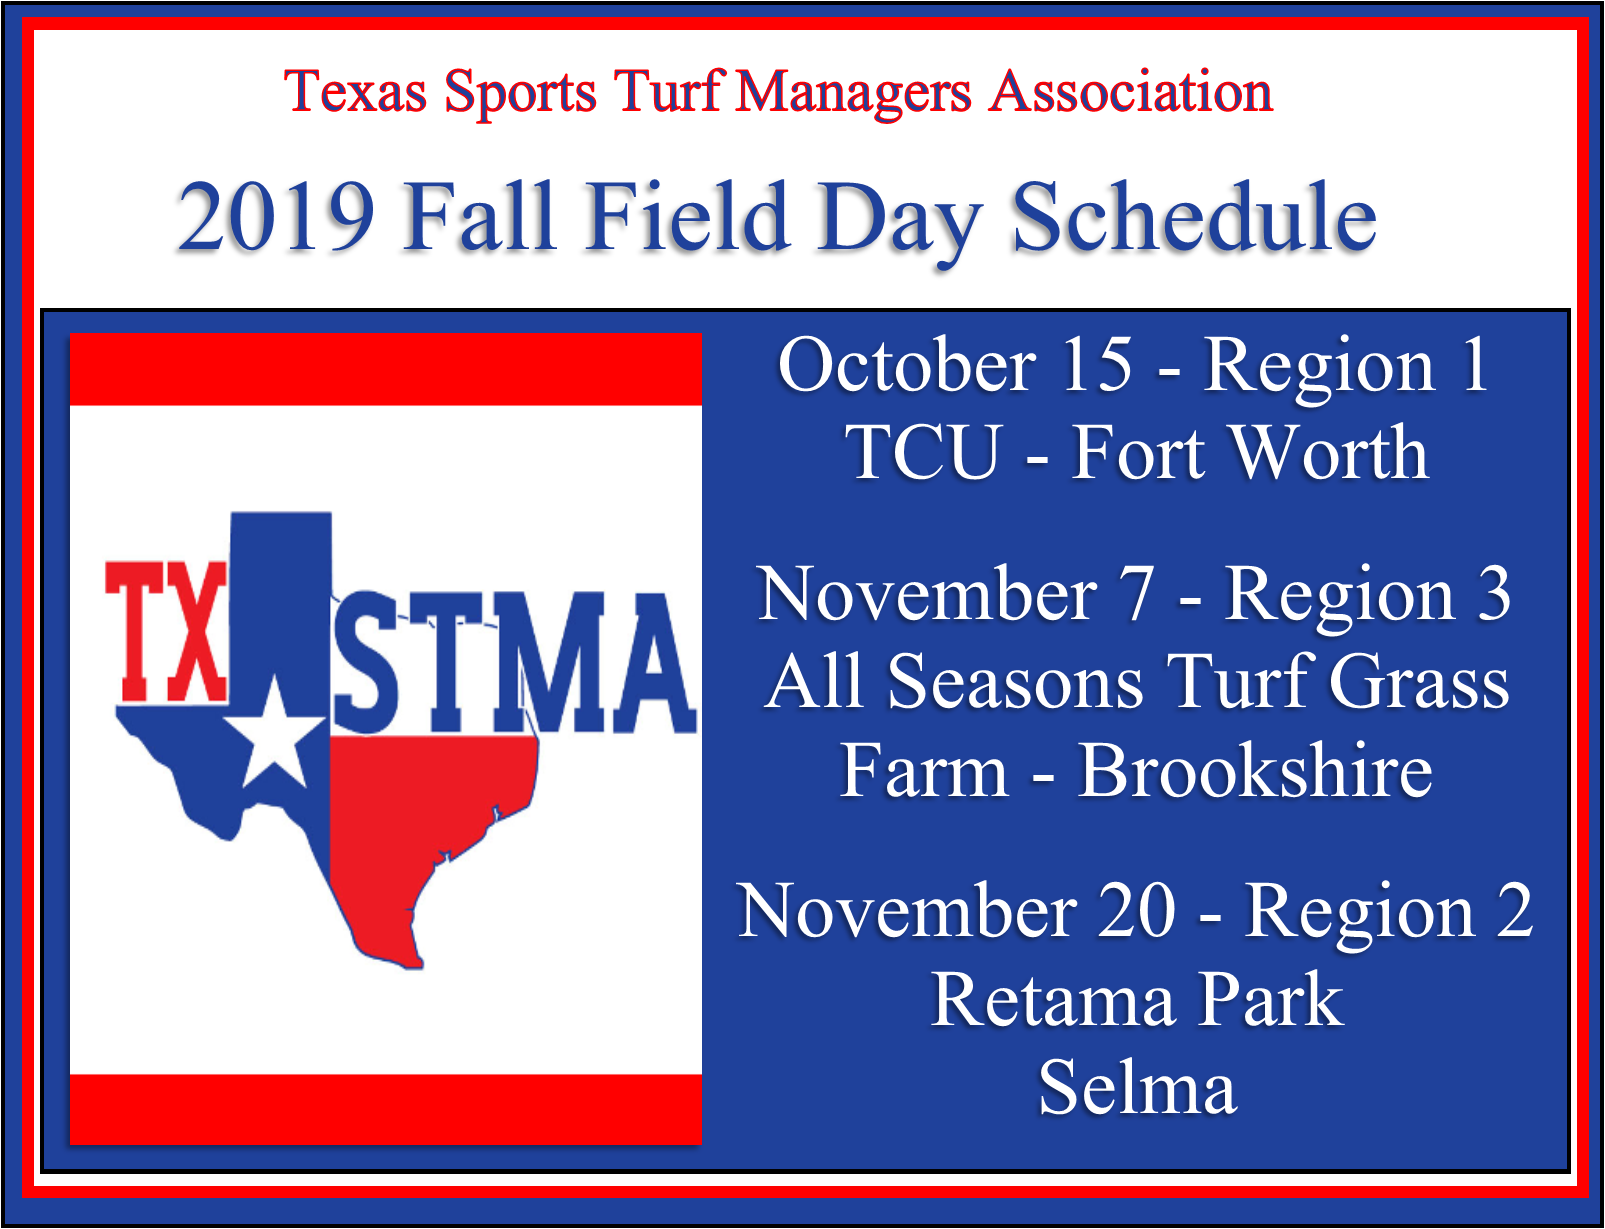 Fall Field Day Schedule